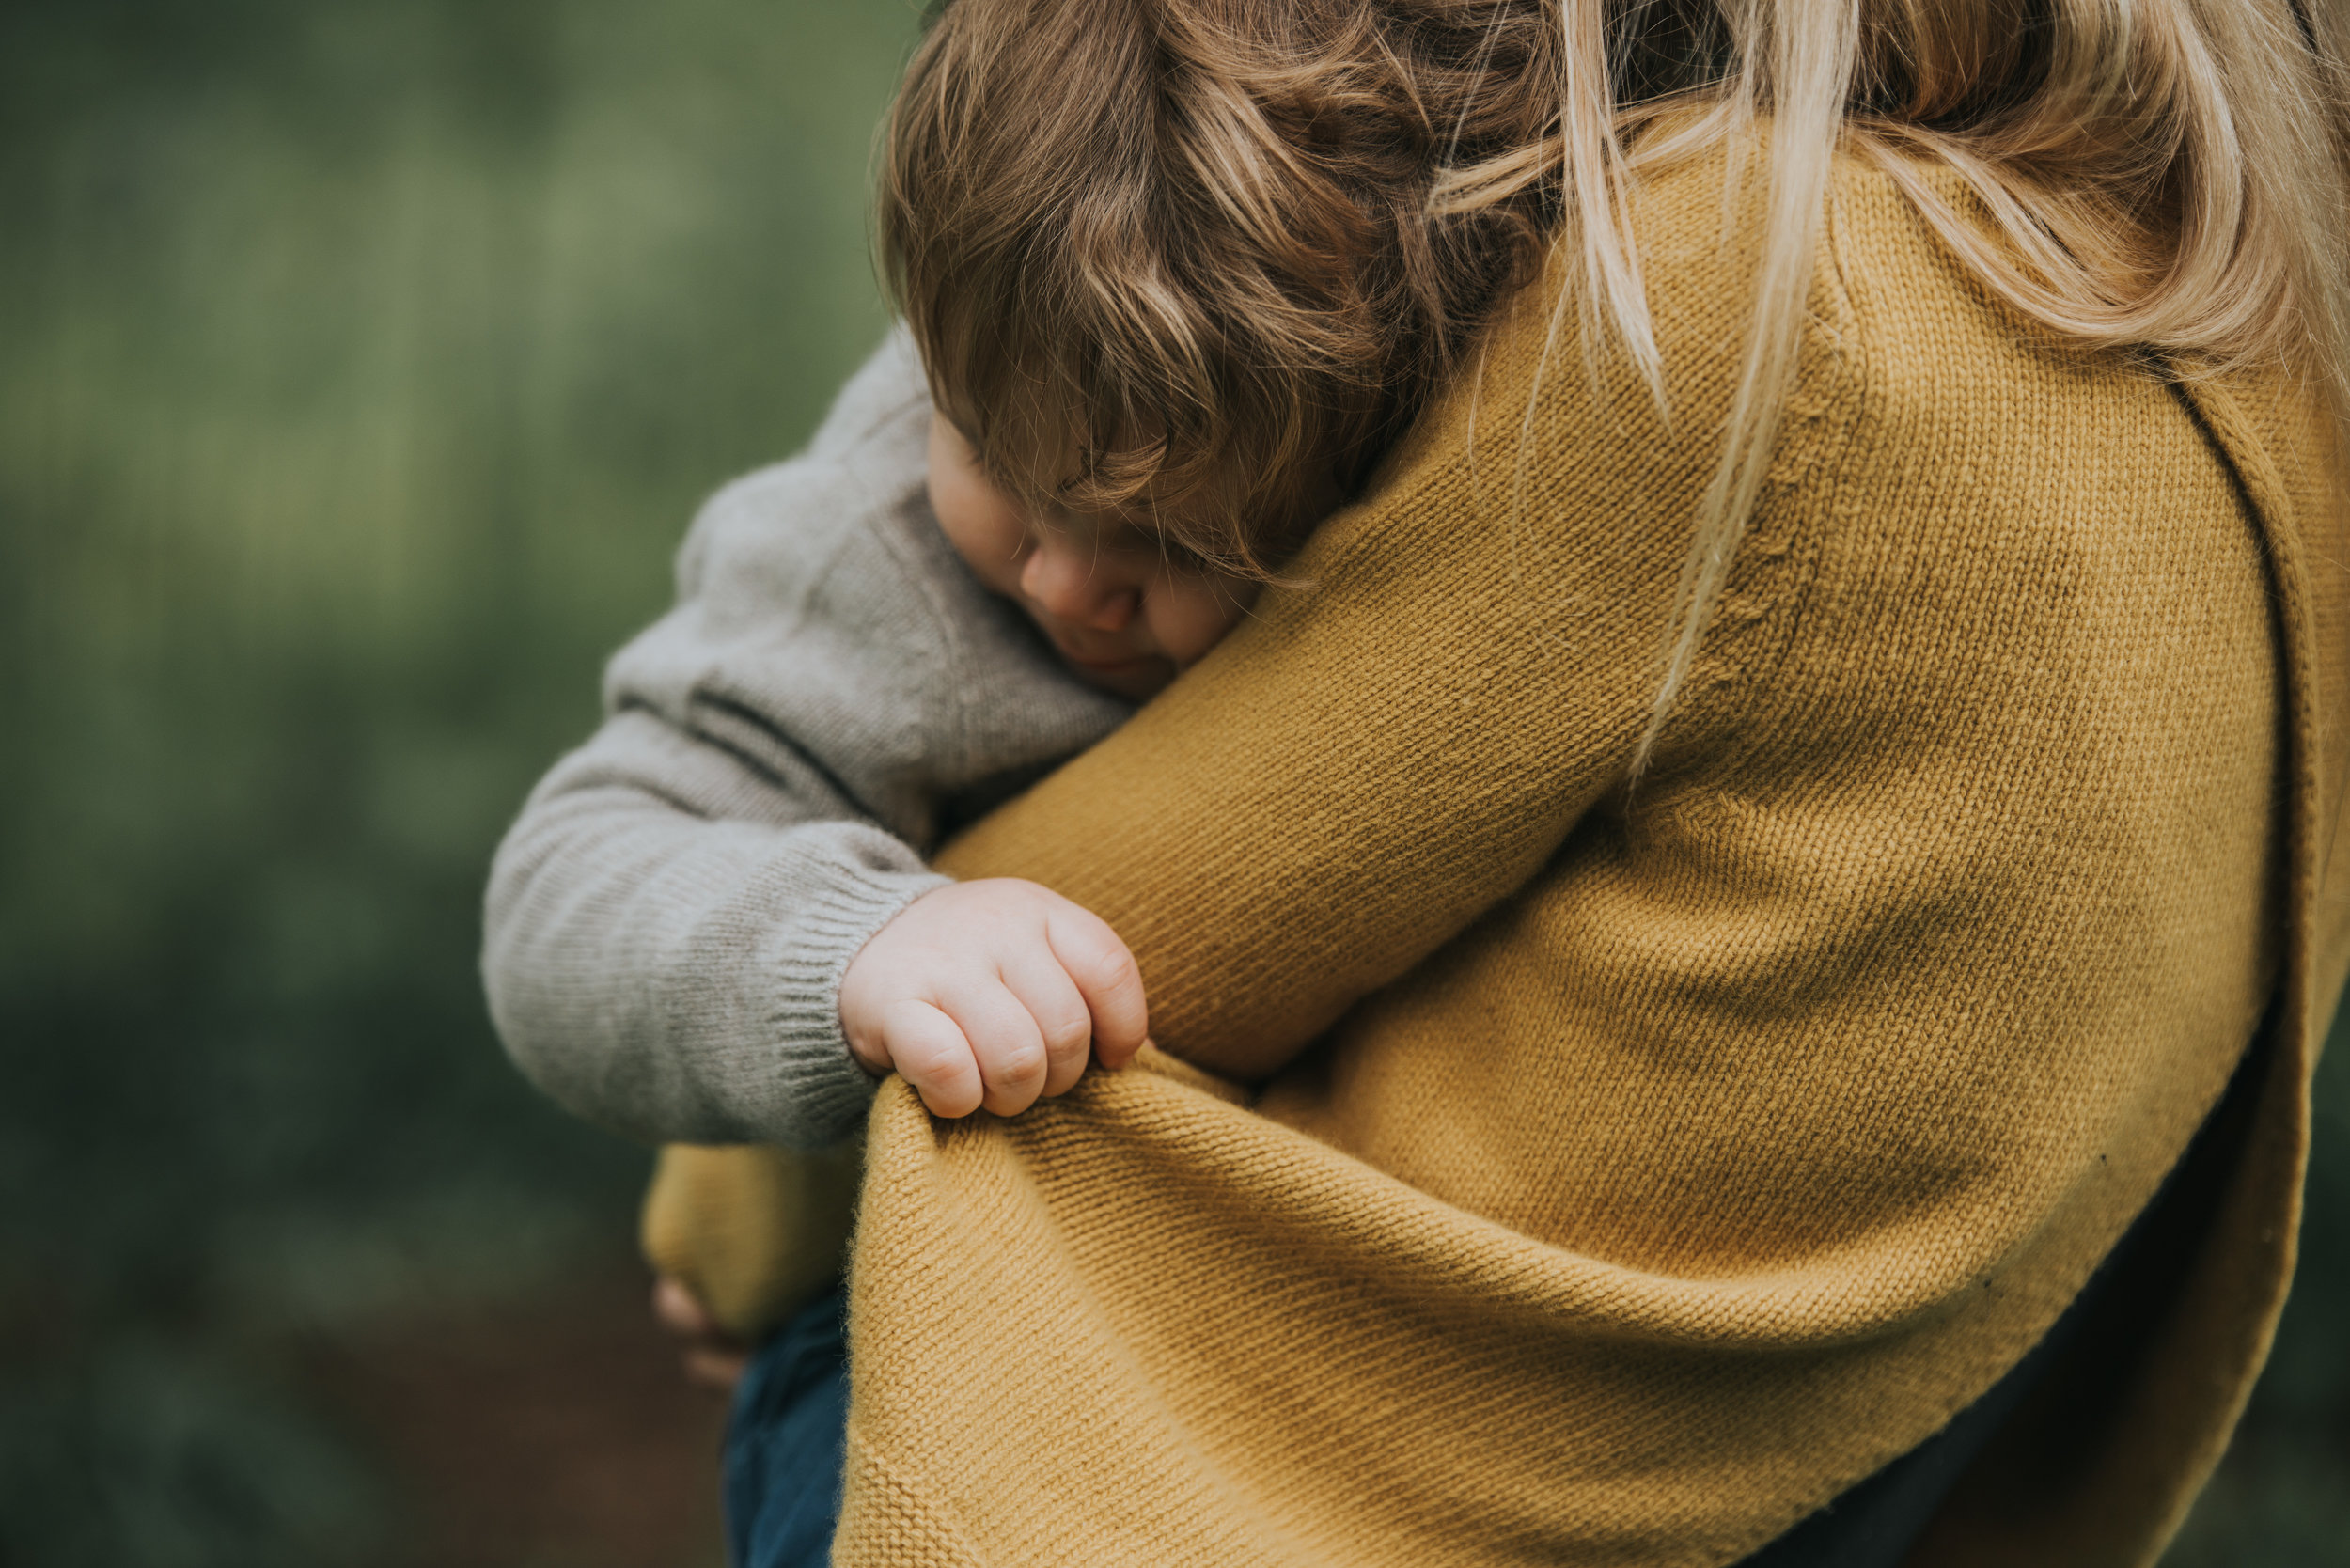 I love the emotion in this image, Ted looks so comforted by being in his mother's arms.